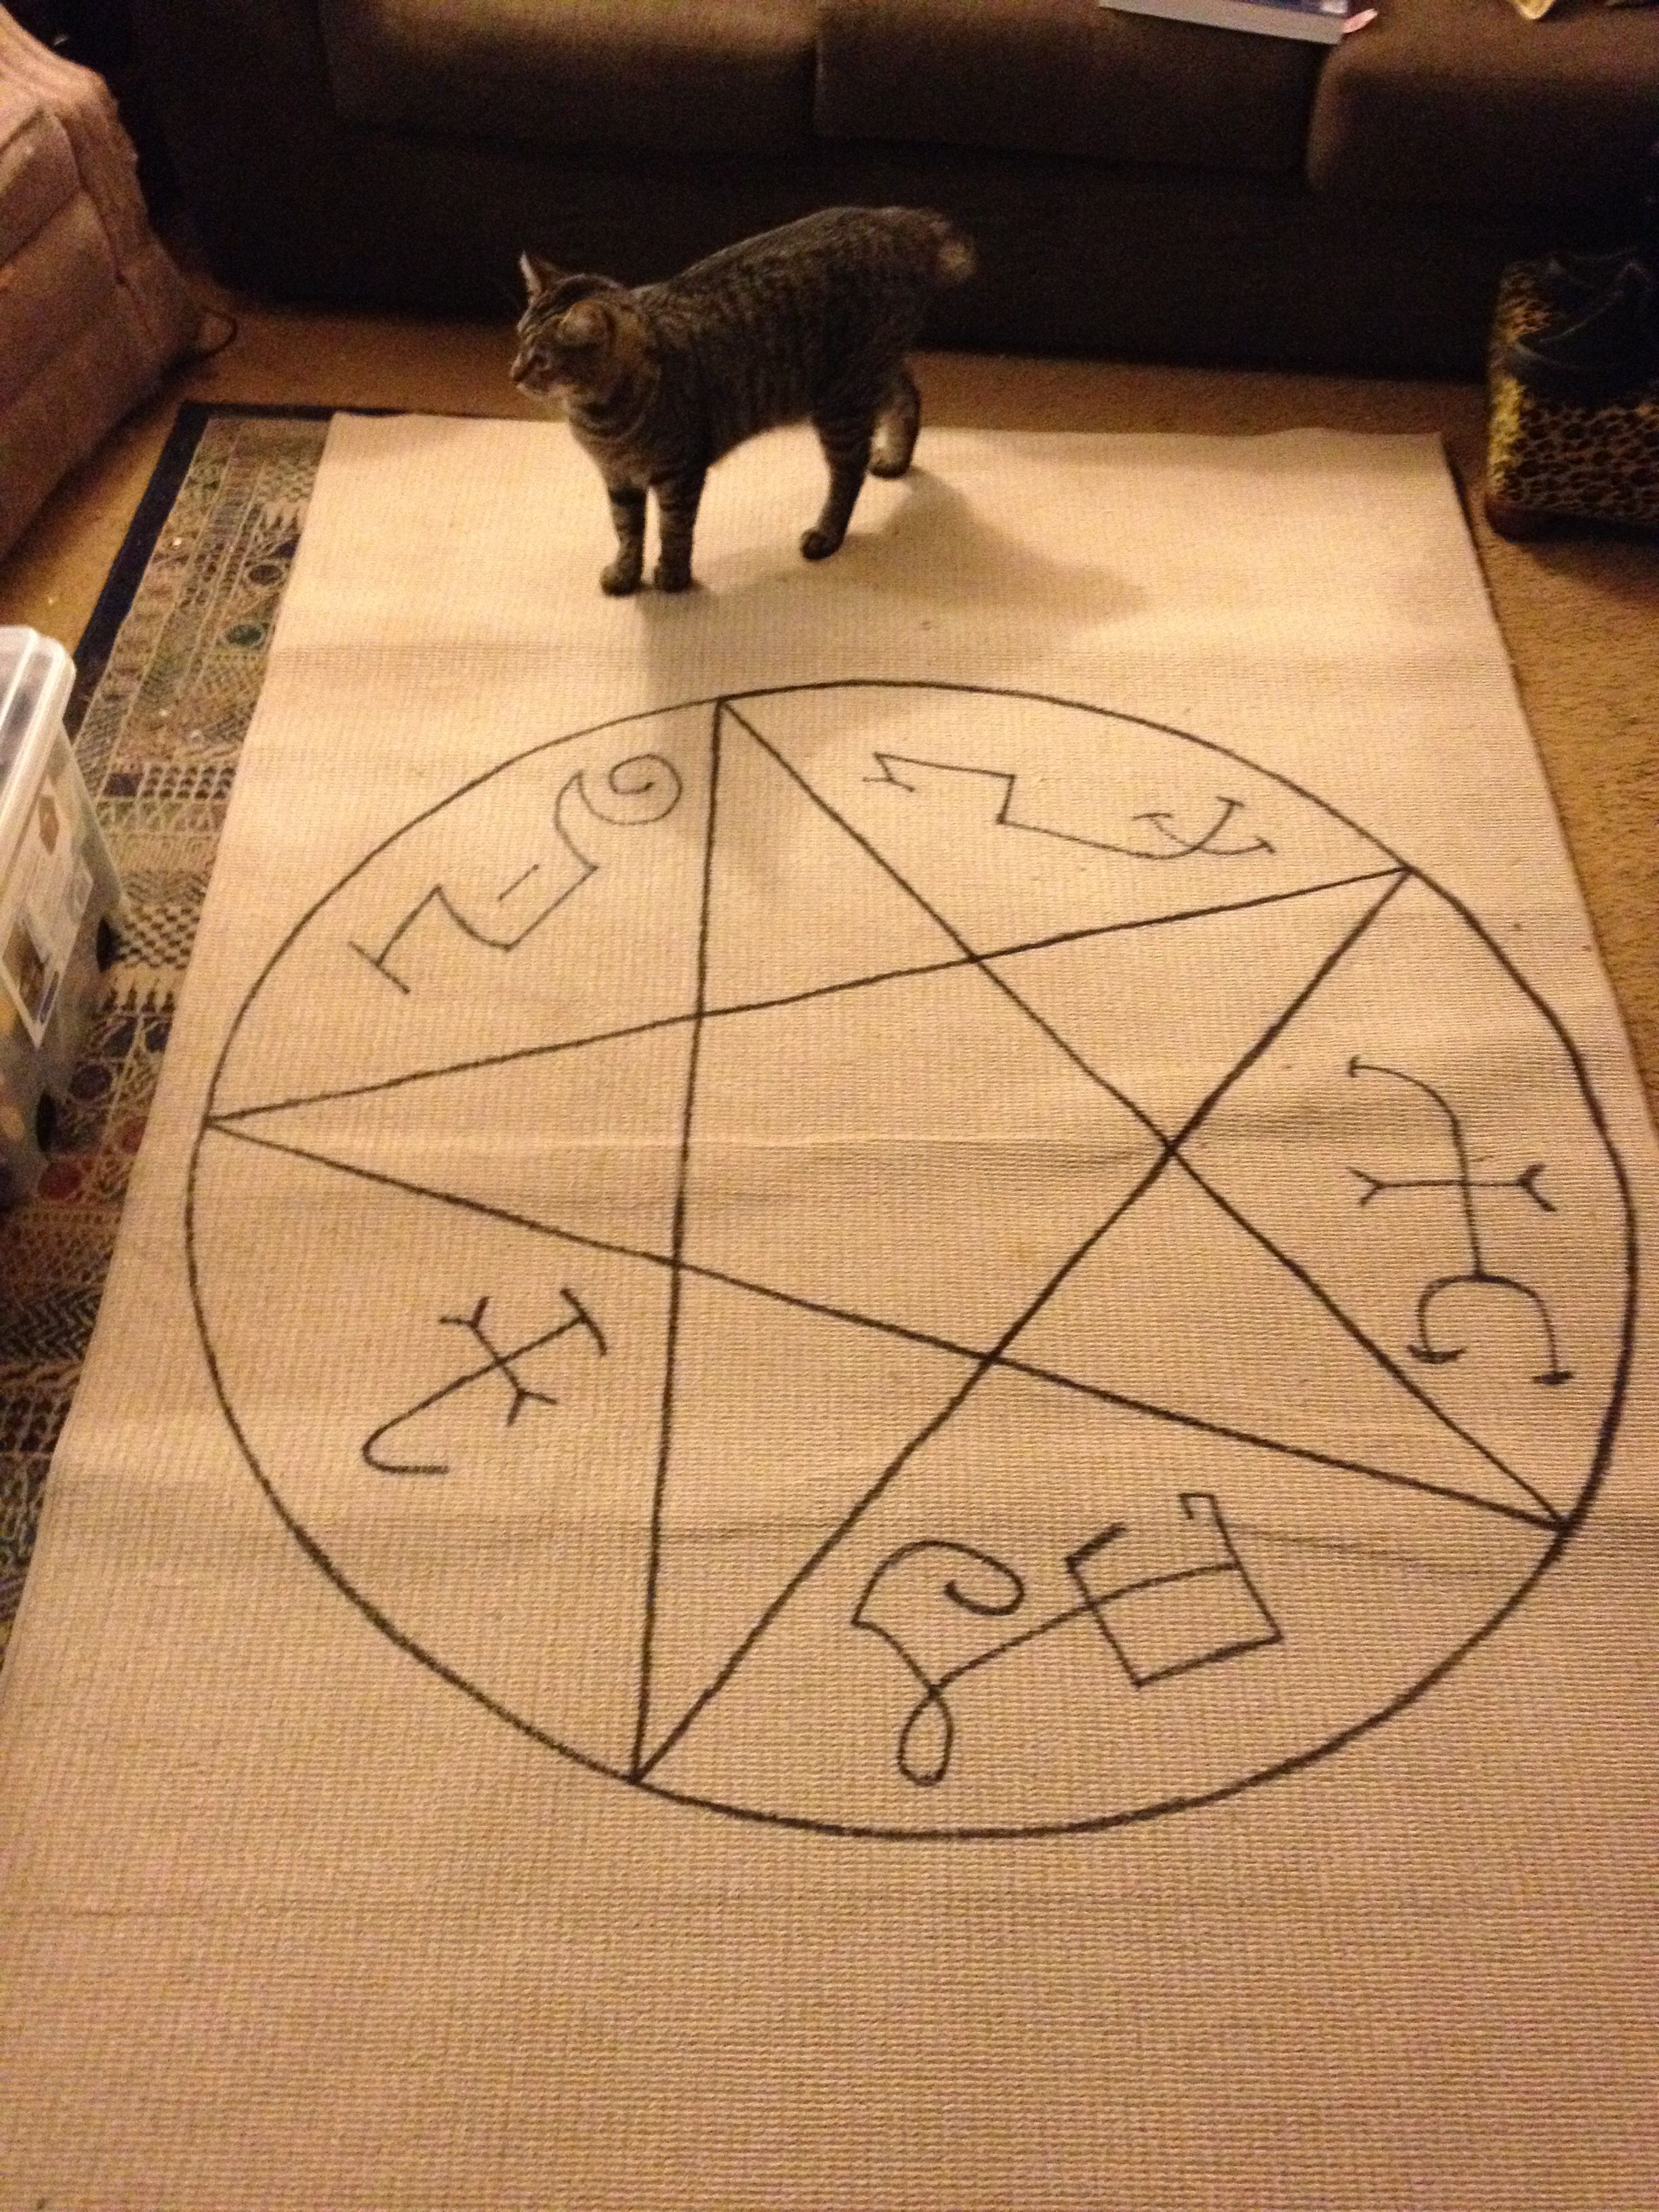 I Had This Rug Drew A Pentagram On For Previous Party The